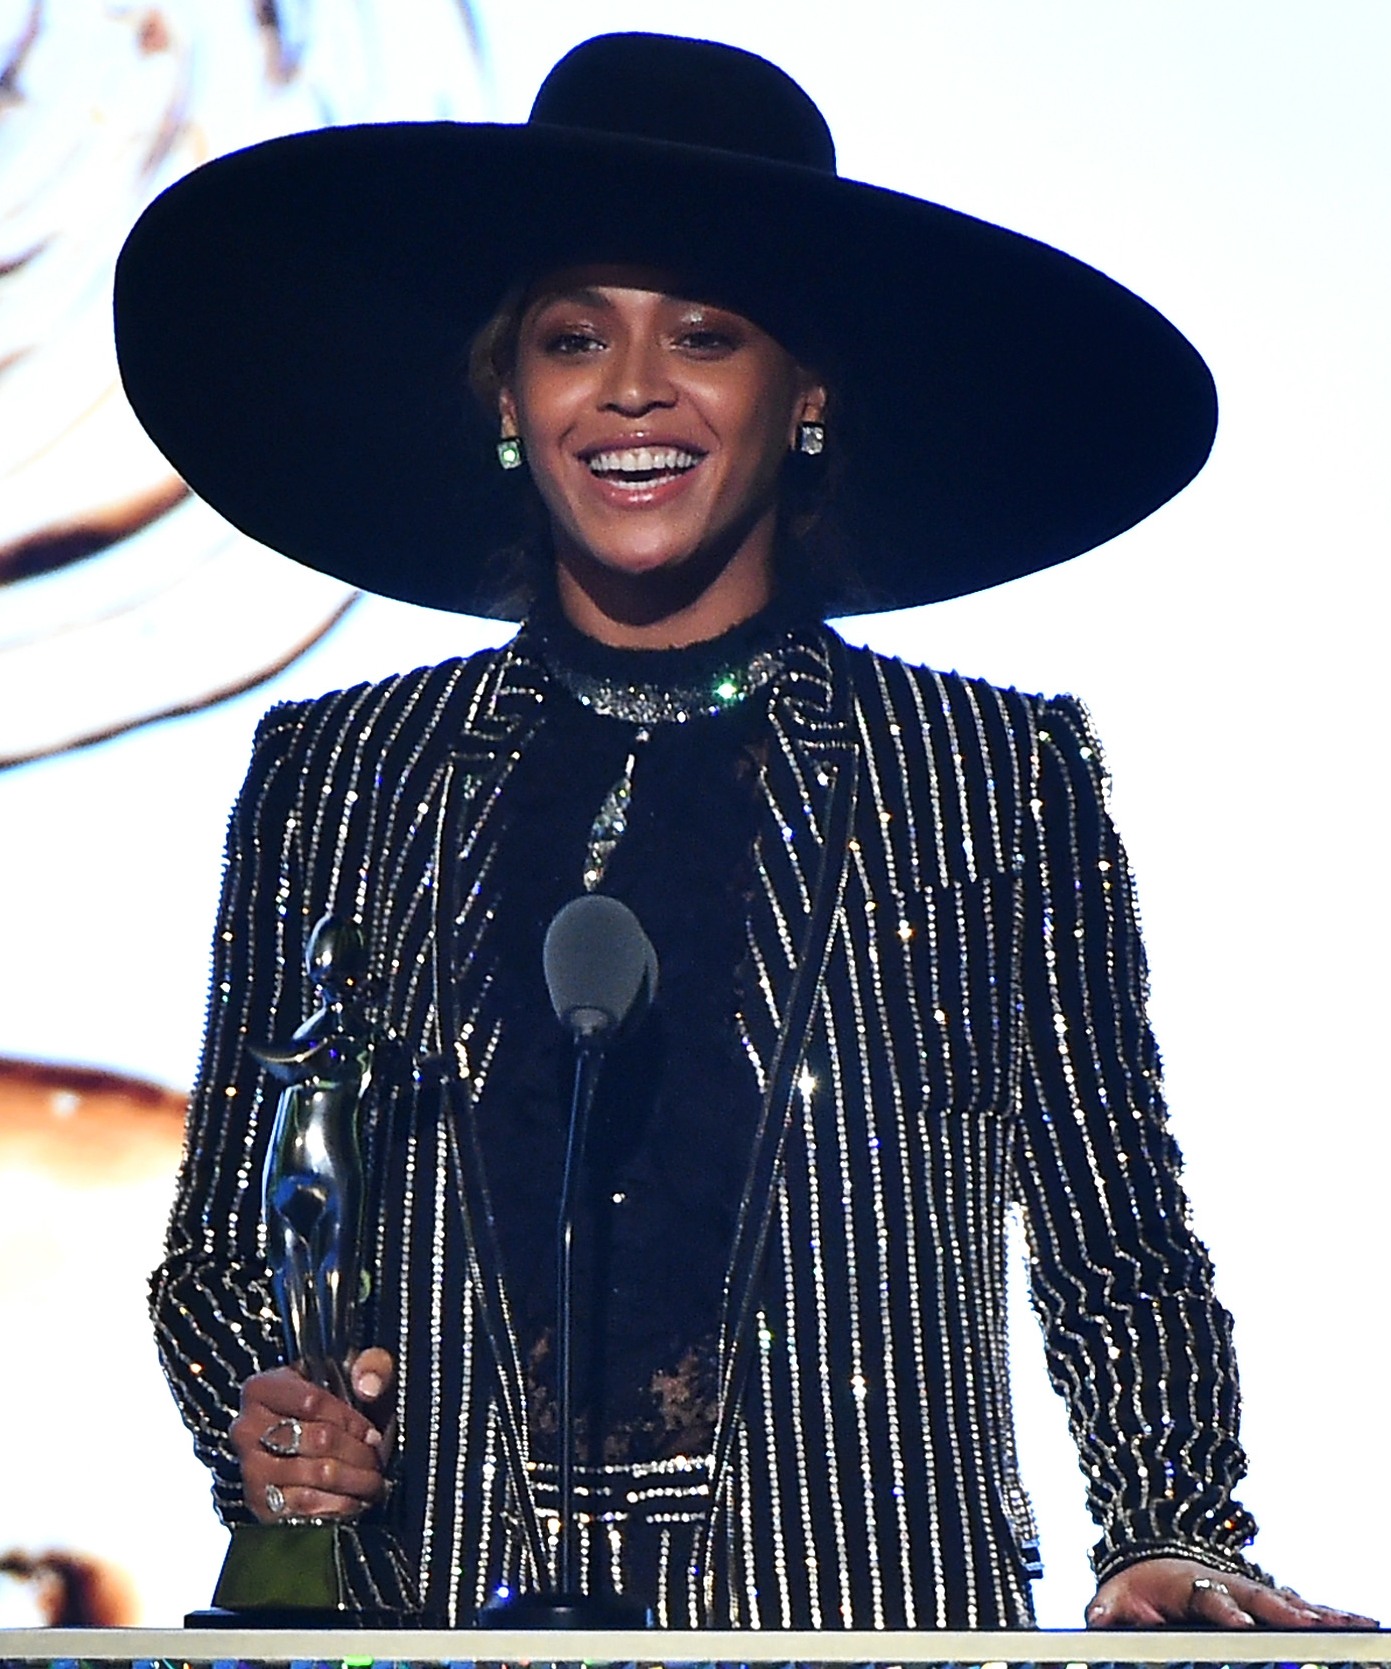 Beyonce accepts The CDFA Fashion Icon Award onstage at the 2016 CFDA Fashion Awards at the Hammerstein Ballroom on June 6, 2016 in New York City.